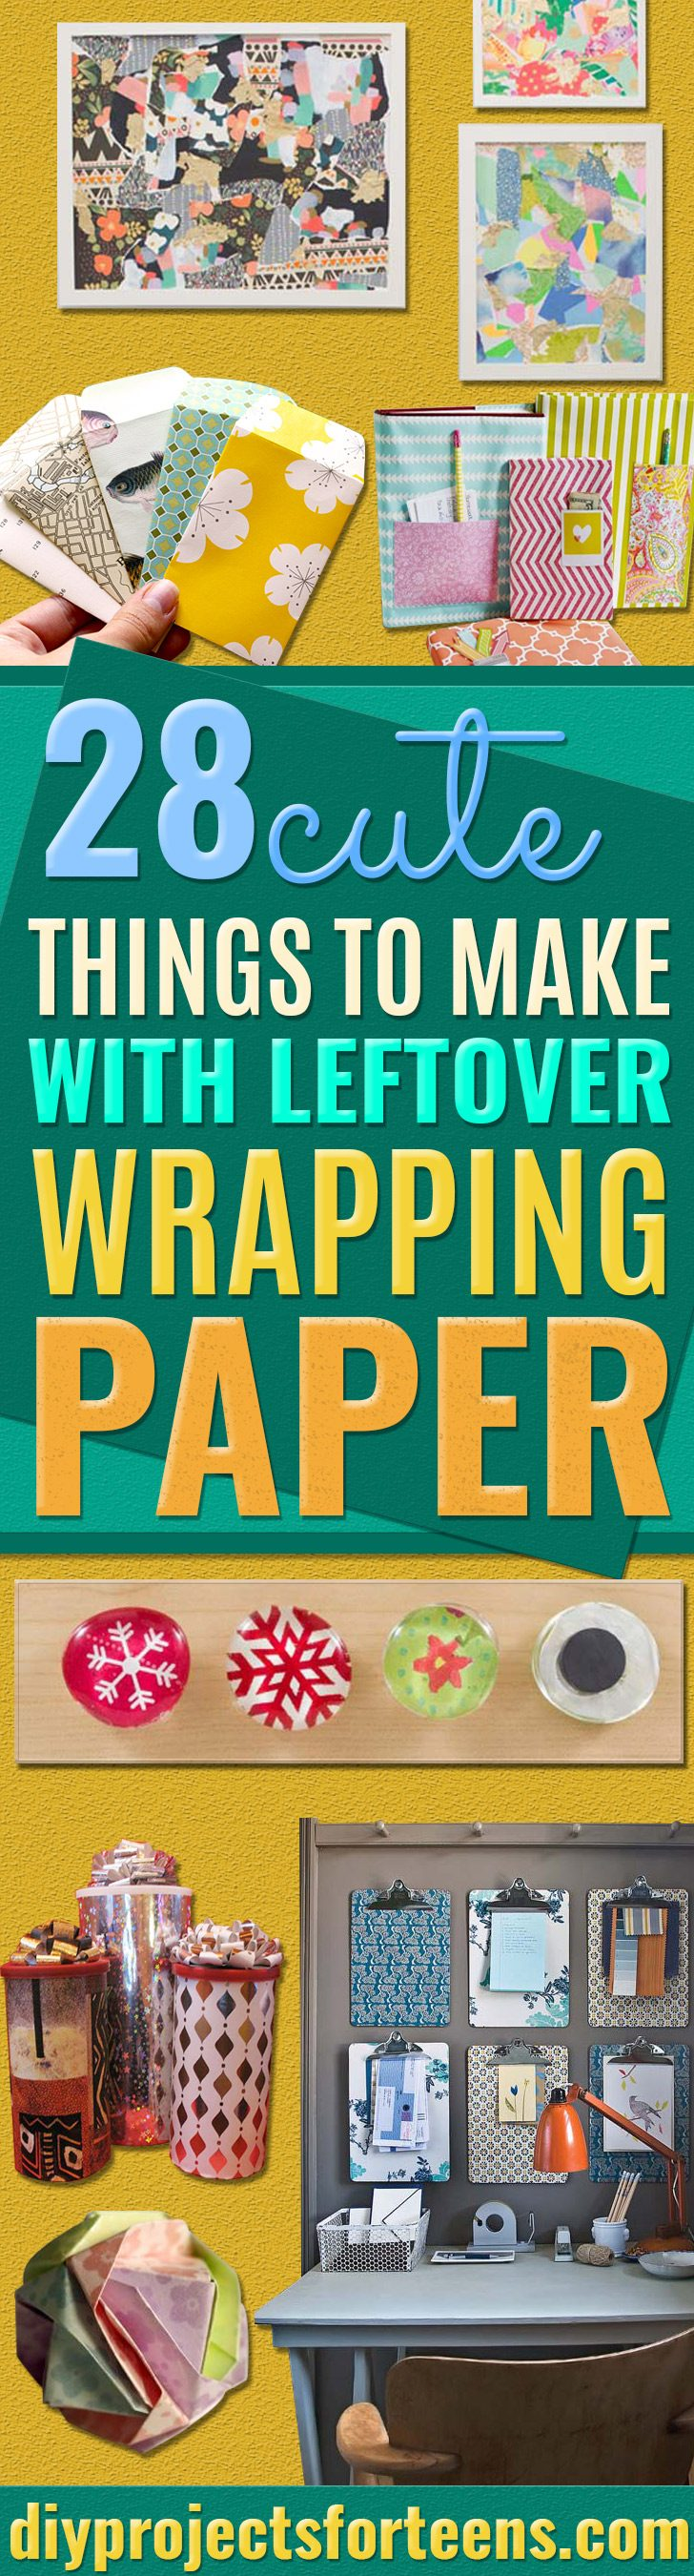 Cool Things to Make With Leftover Wrapping Paper - Easy Crafts, Fun DIY Projects, Gifts and DIY Home Decor Ideas - Don't Trash The Christmas Wrapping Paper and Learn How To Make These Awesome Ideas Instead - Creative Craft Ideas for Teens, Tweens, Teenagers, Boys and Girls